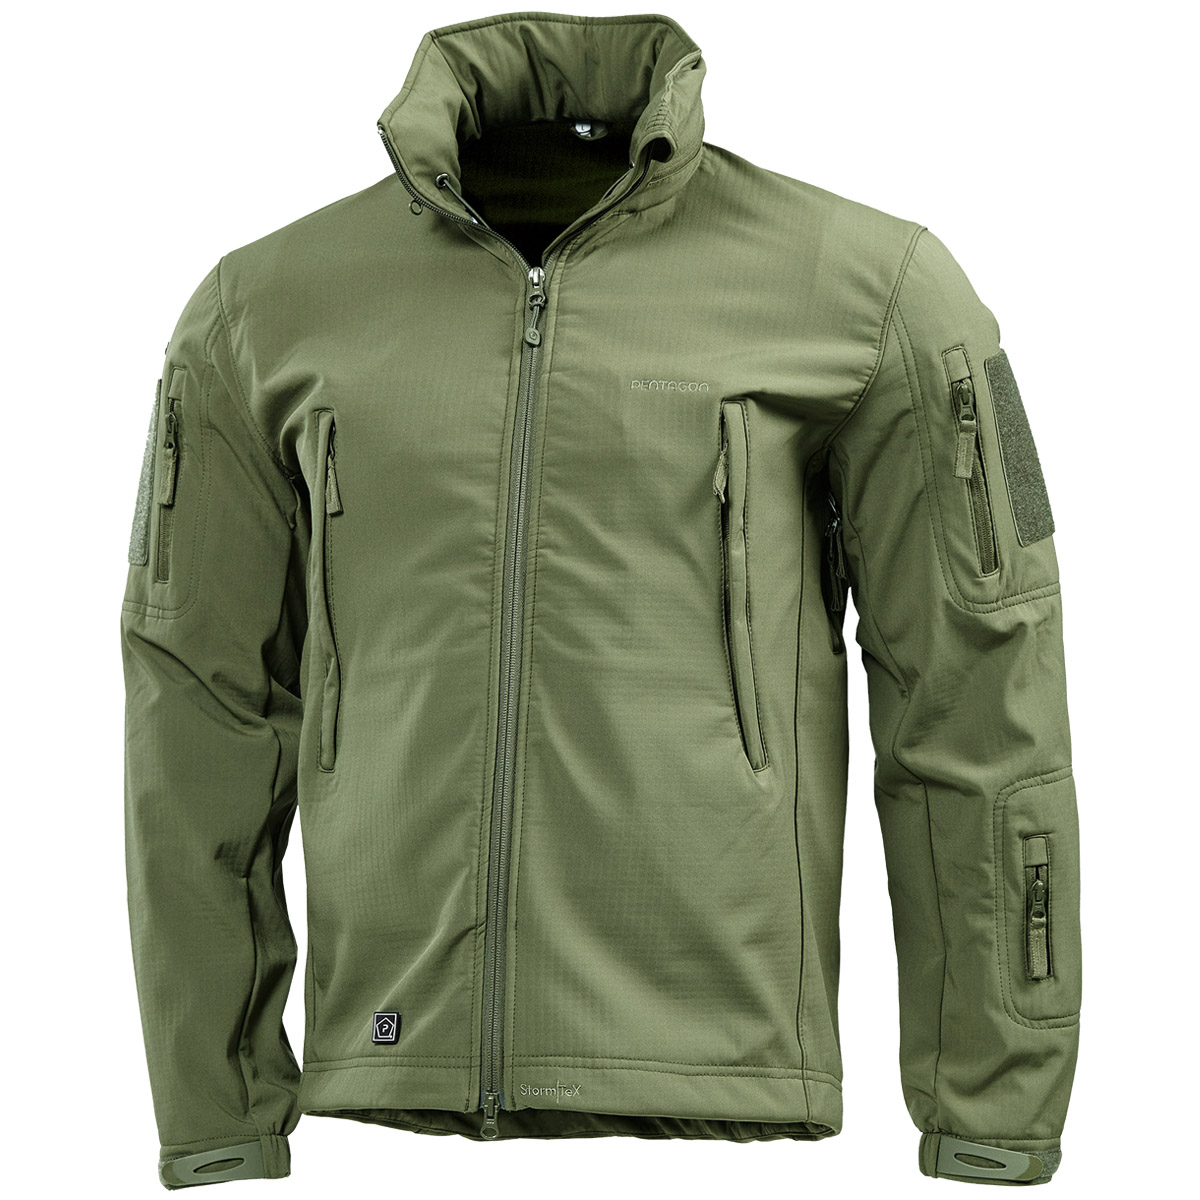 ca0363099e2d Details about Pentagon Artaxes Soft Shell Military Tactical Mens Jacket  Hunting Olive Green OD